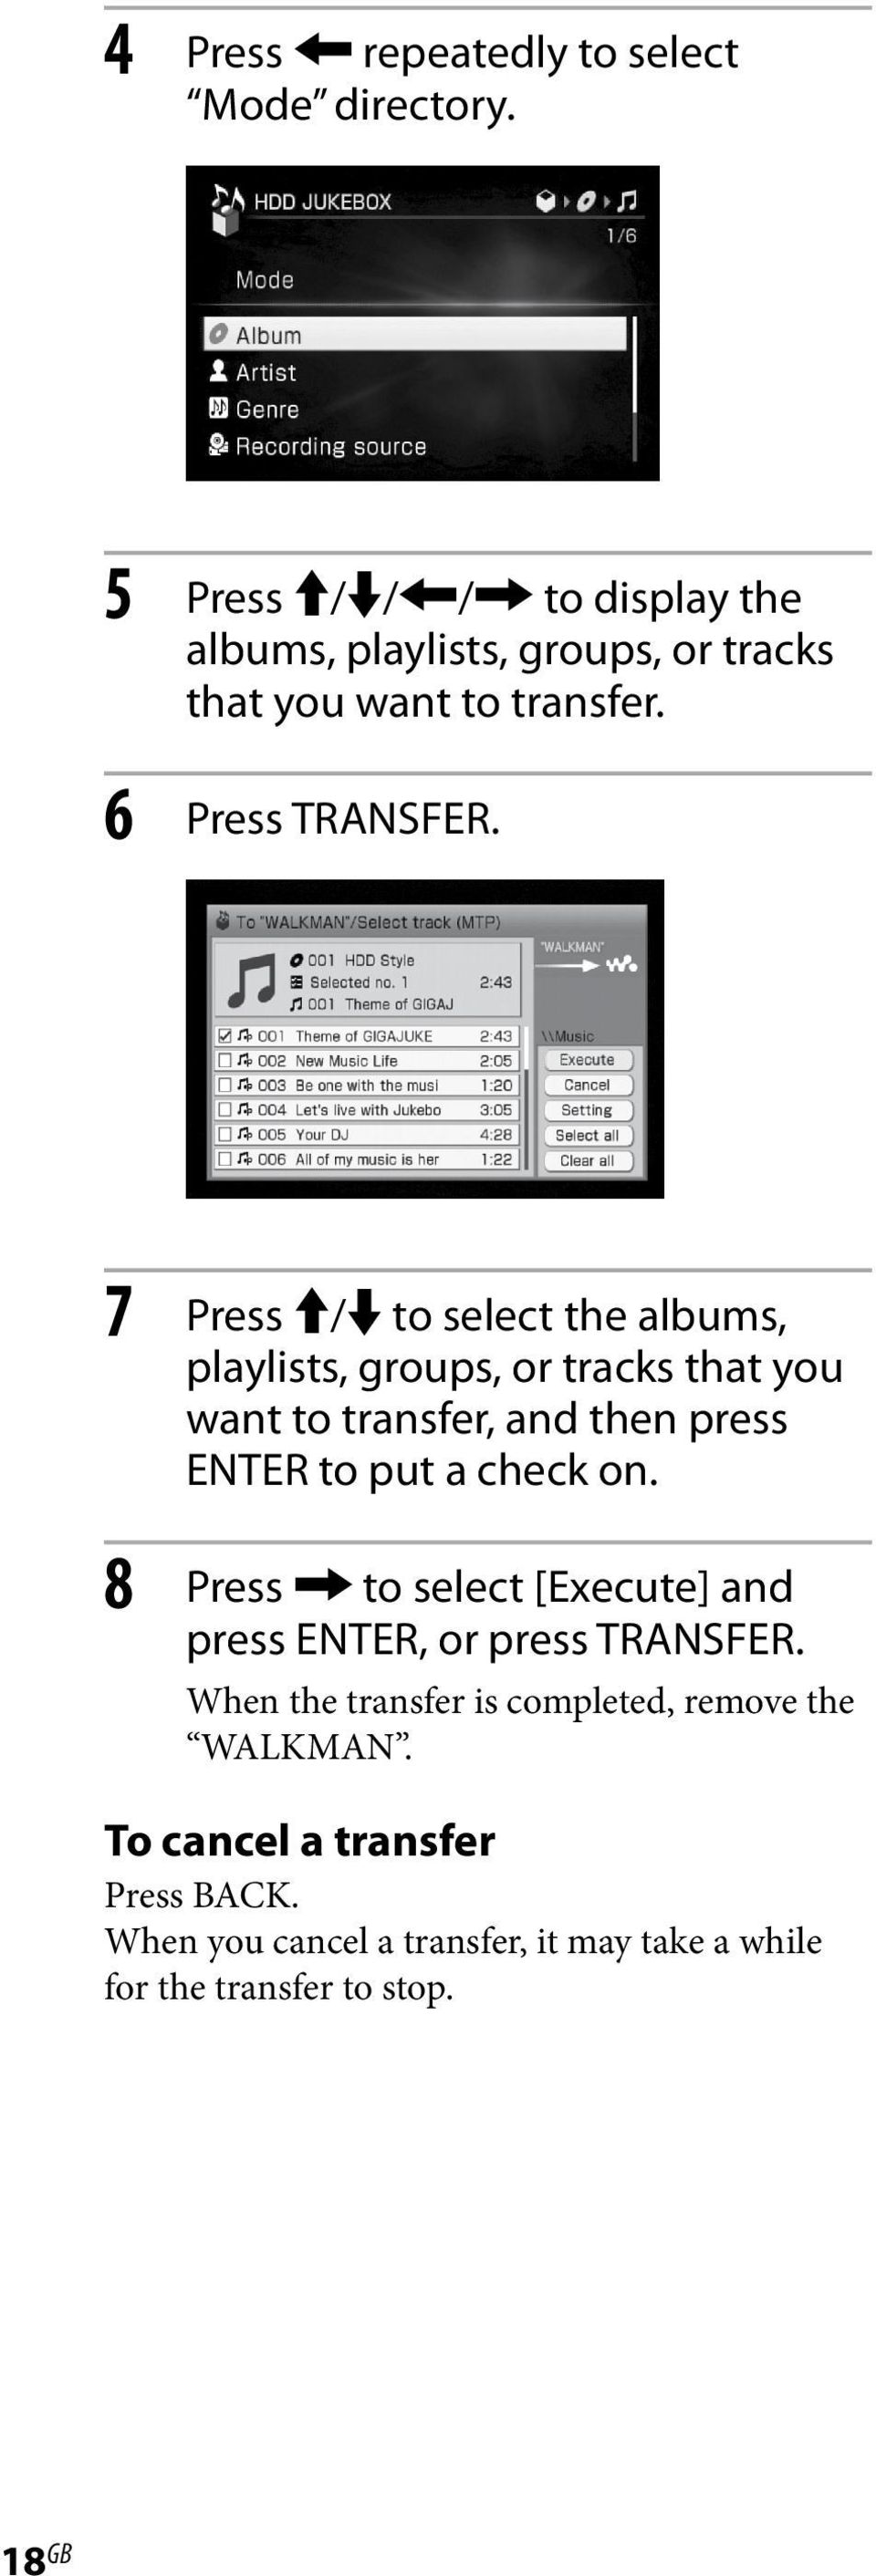 7 Press / to select the albums, playlists, groups, or tracks that you want to transfer, and then press ENTER to put a check on.